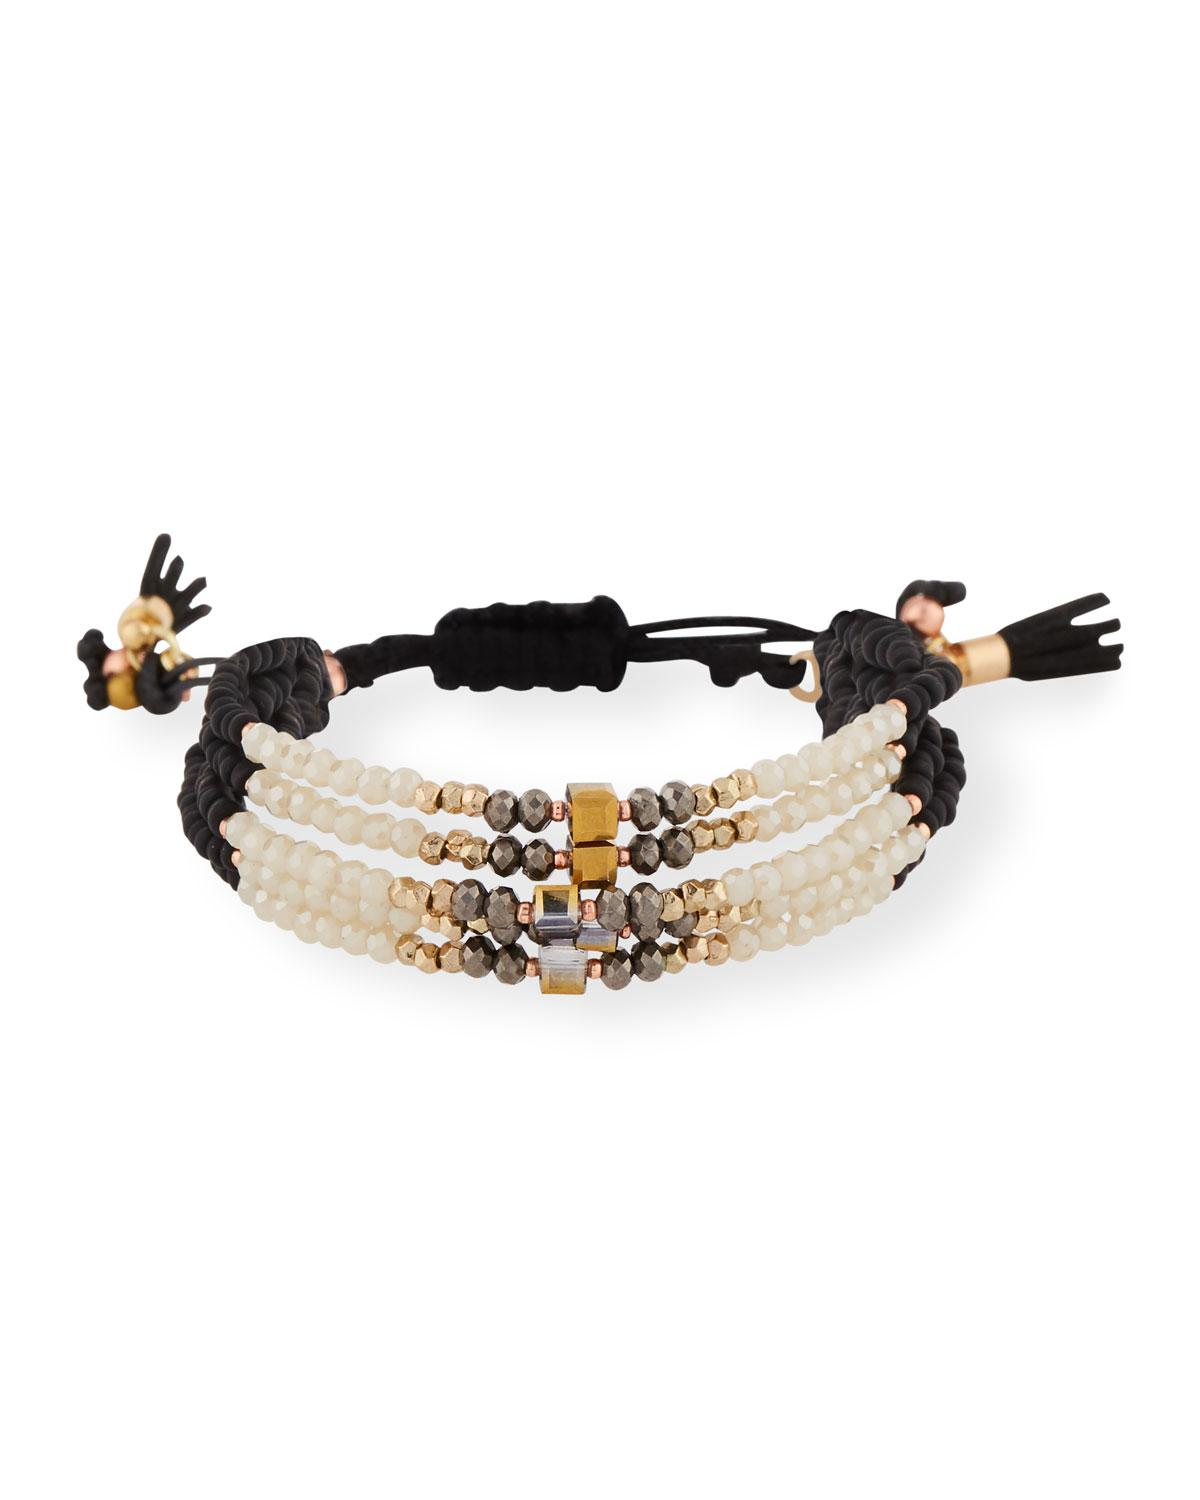 Nakamol Adjustable Beaded Crystal and Leather Bracelet SCR58dfd4